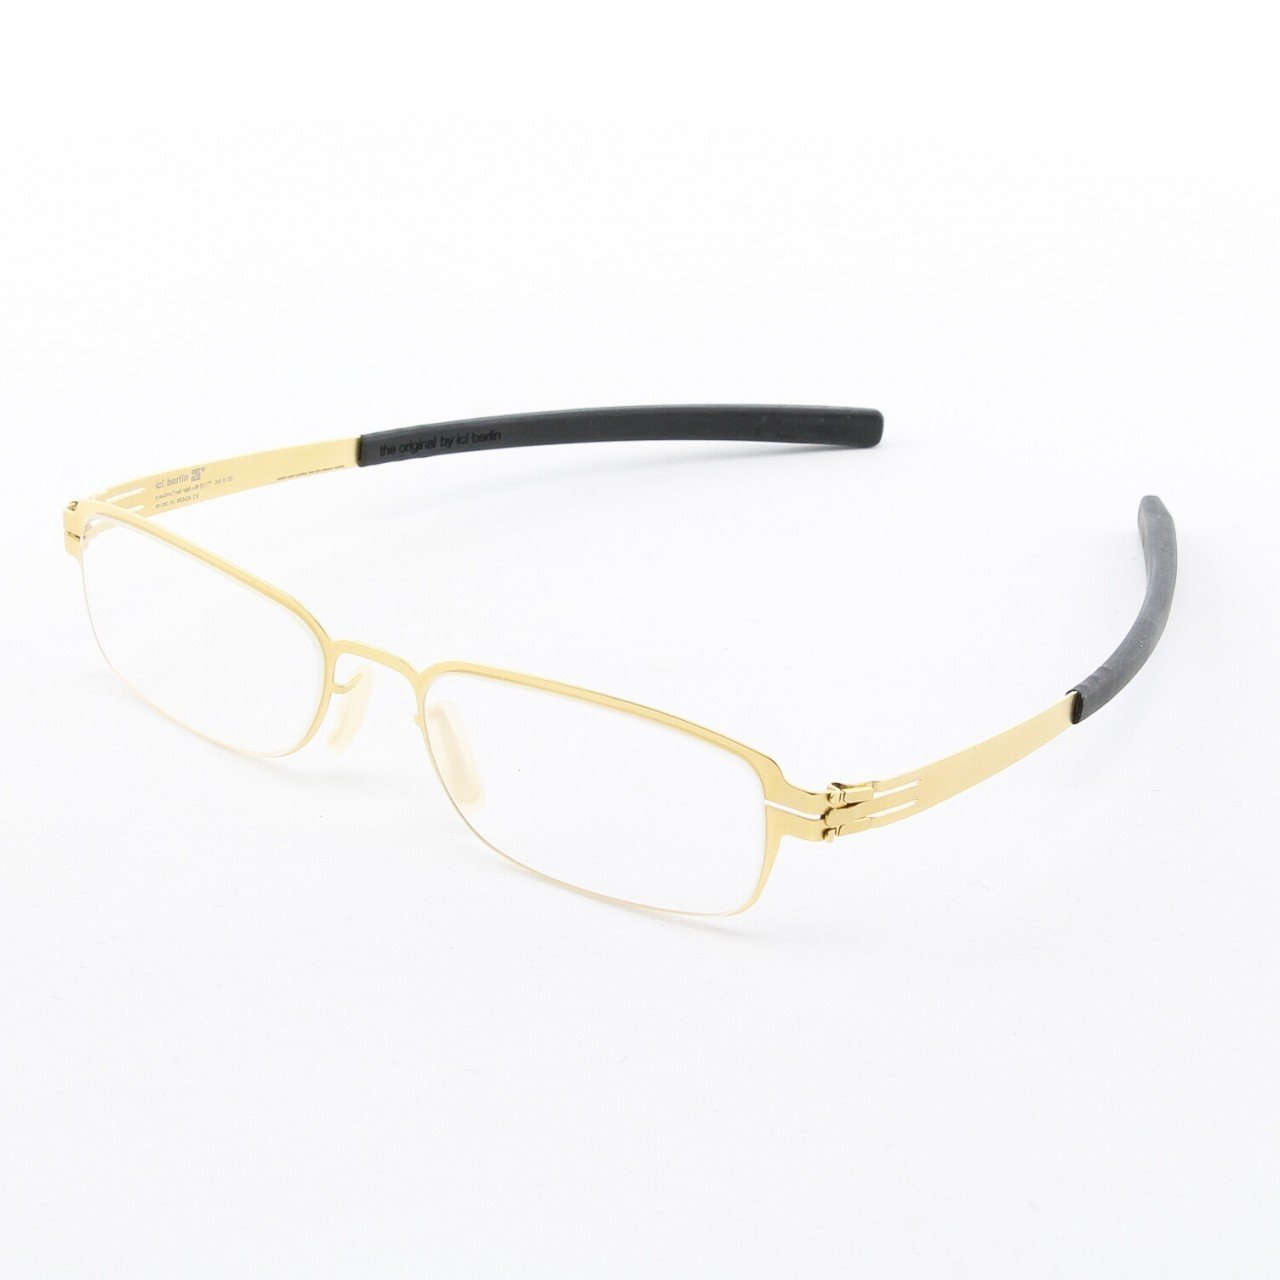 ic! Berlin Ilya K. Eyeglasses Col. Gold with Clear Lenses